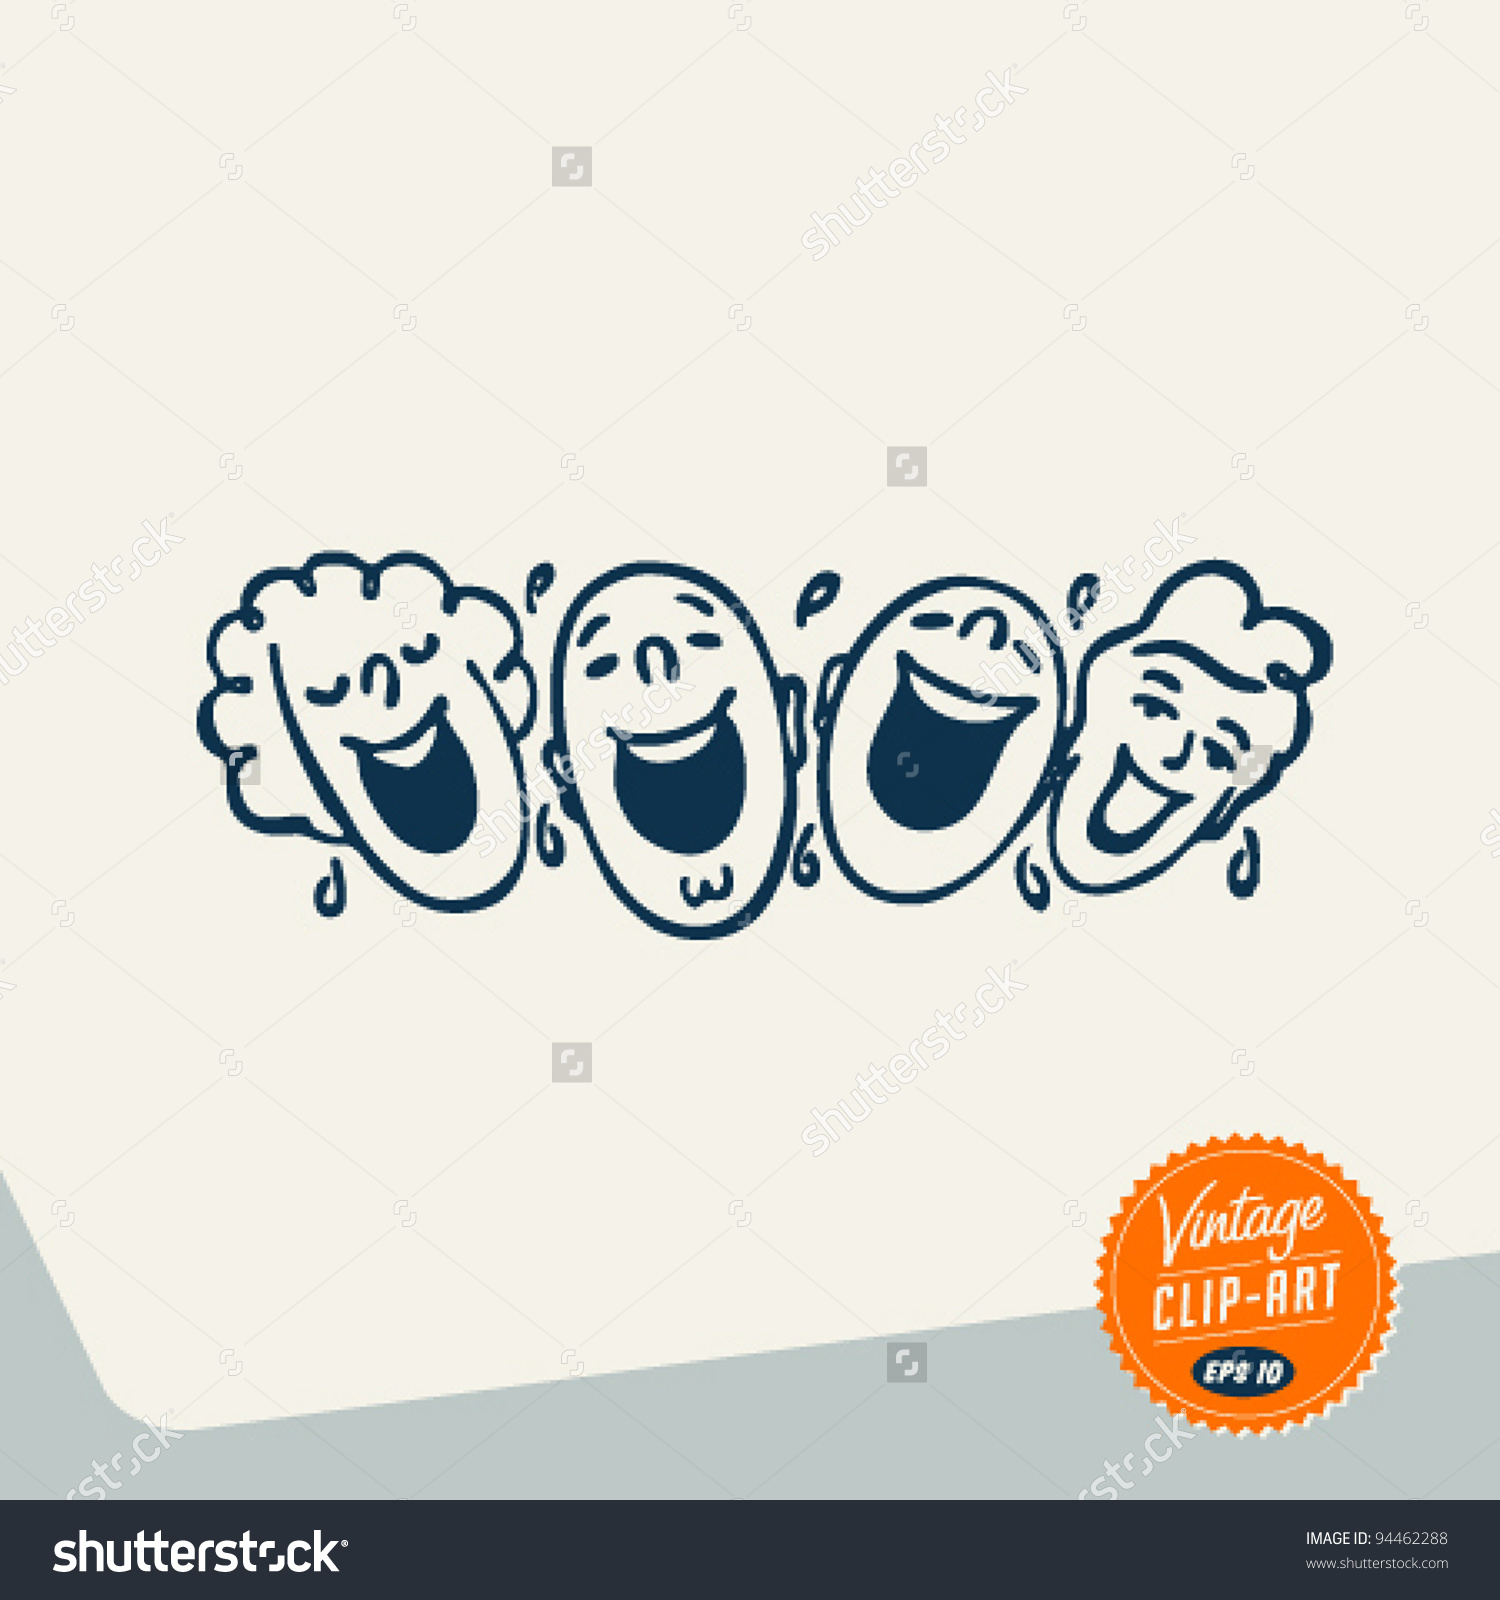 Vintage Clip Art People Laughing Out Stock Vector 94462288.